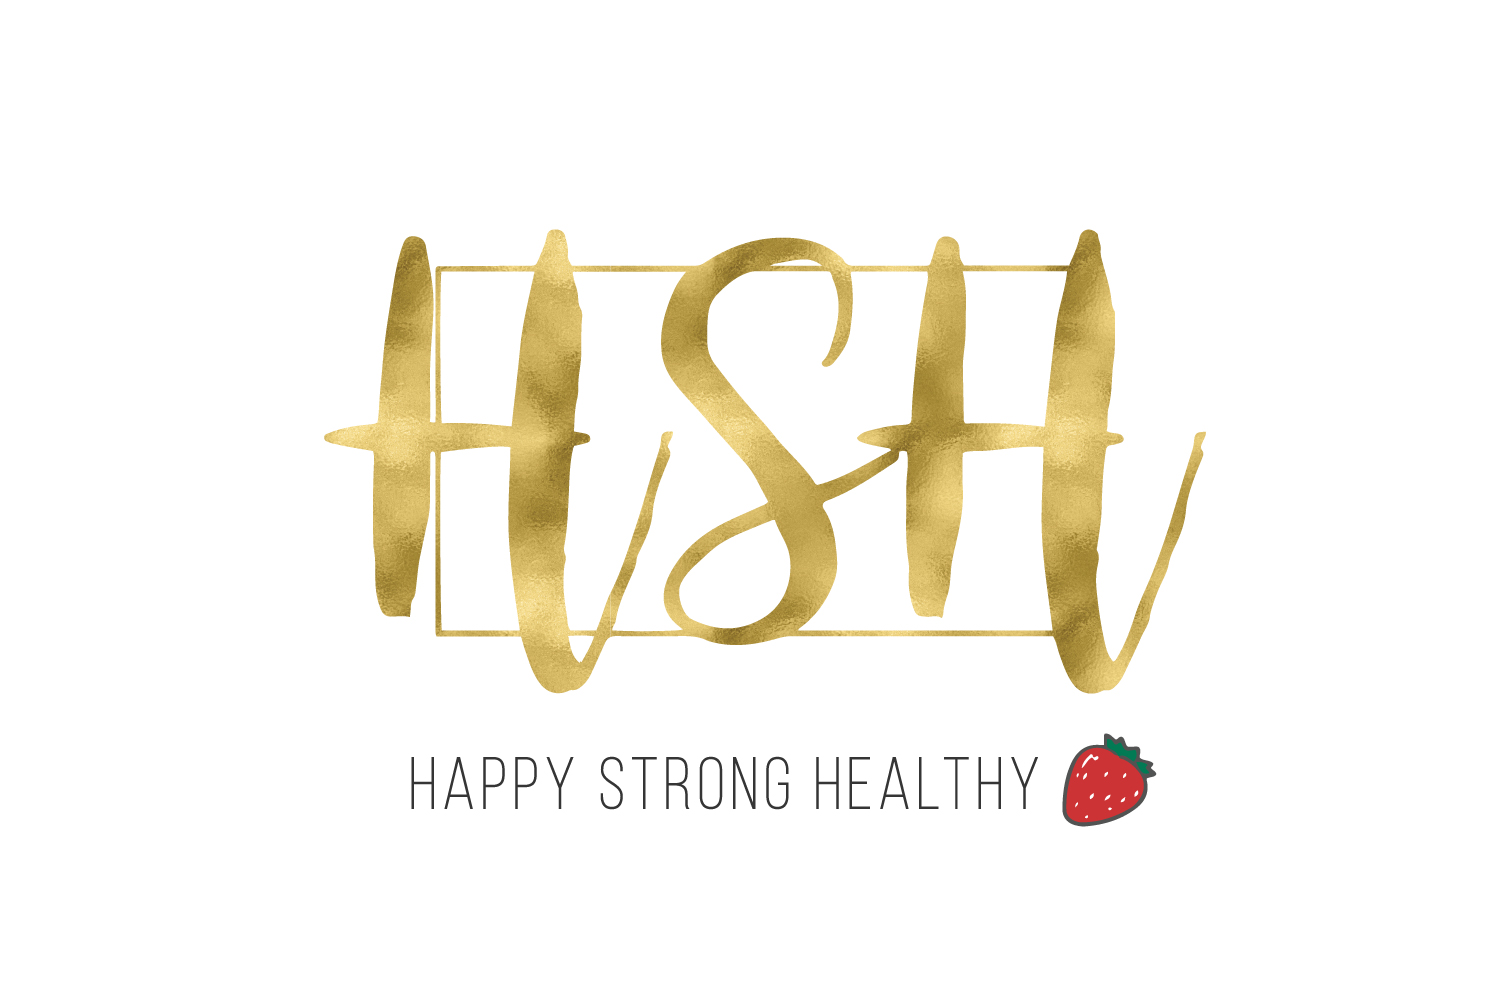 Happy Strong Healthy